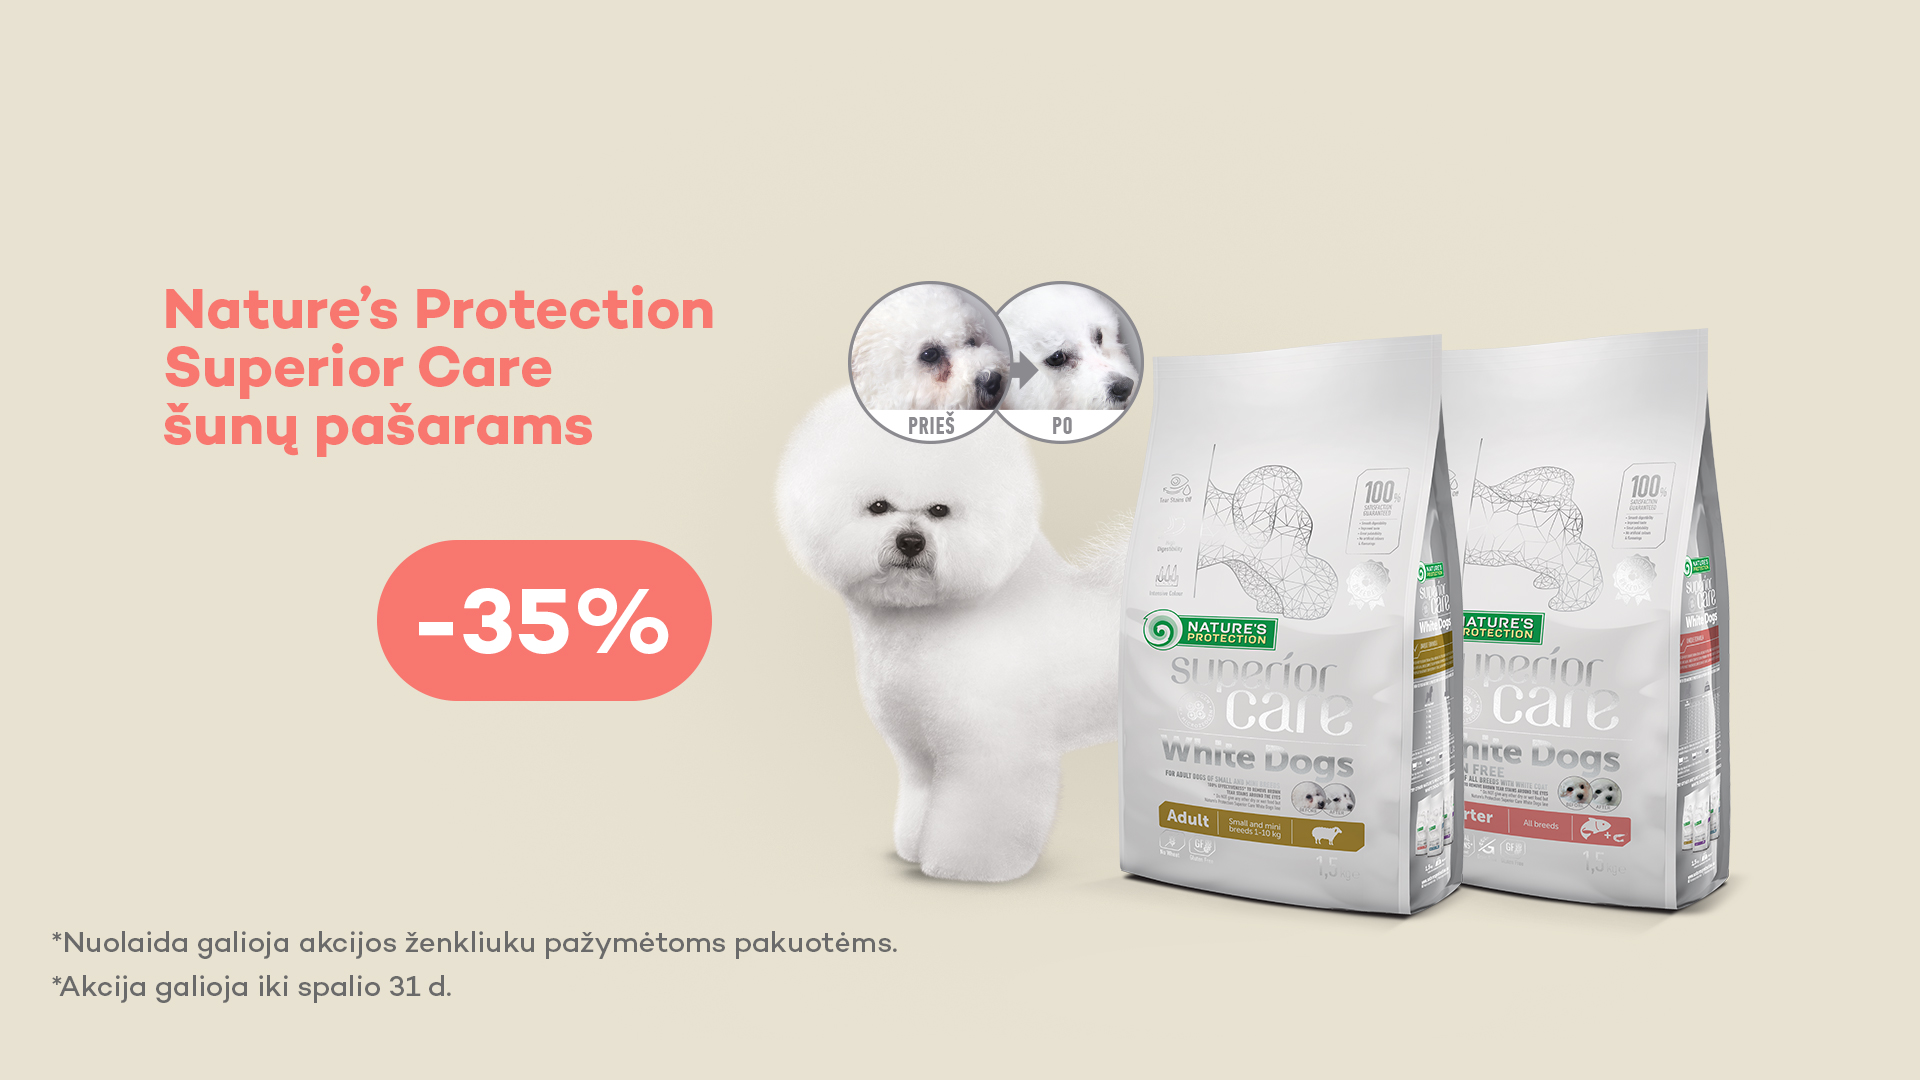 Nature's Protection Superior Care